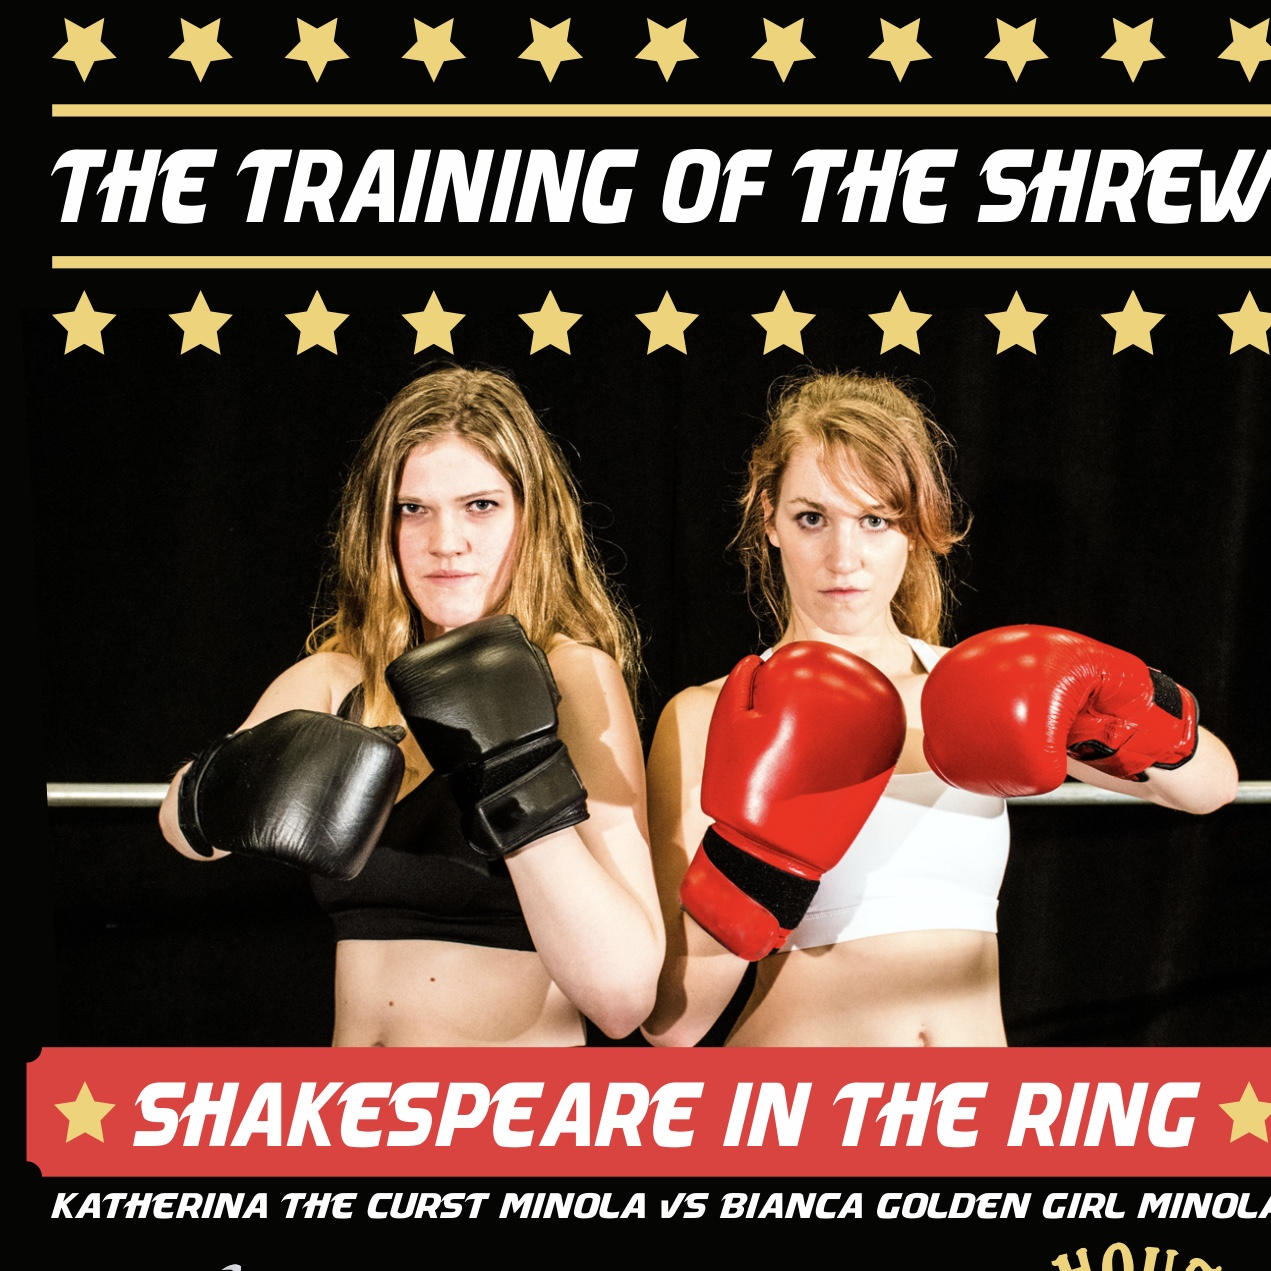 Training of the Shrew - Training of the ShrewPerformed at the 2018 Vancouver Fringe Festival, in this zany retelling of Shakespeare's controversial comedy, The Taming of the Shew, champion boxer Bianca